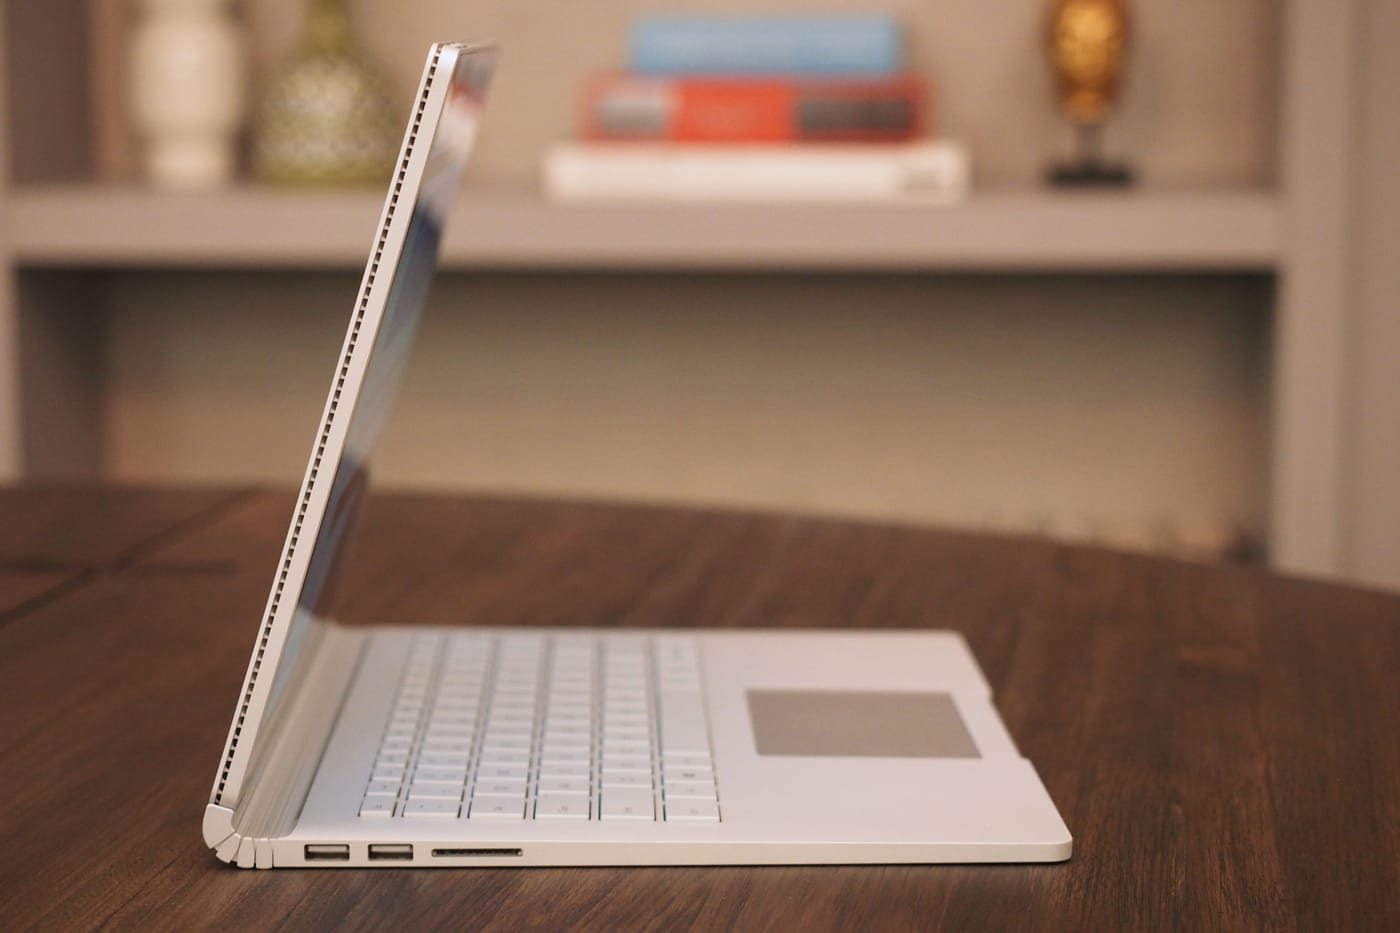 Surface Book review: The ultimate laptop, even if it isn't